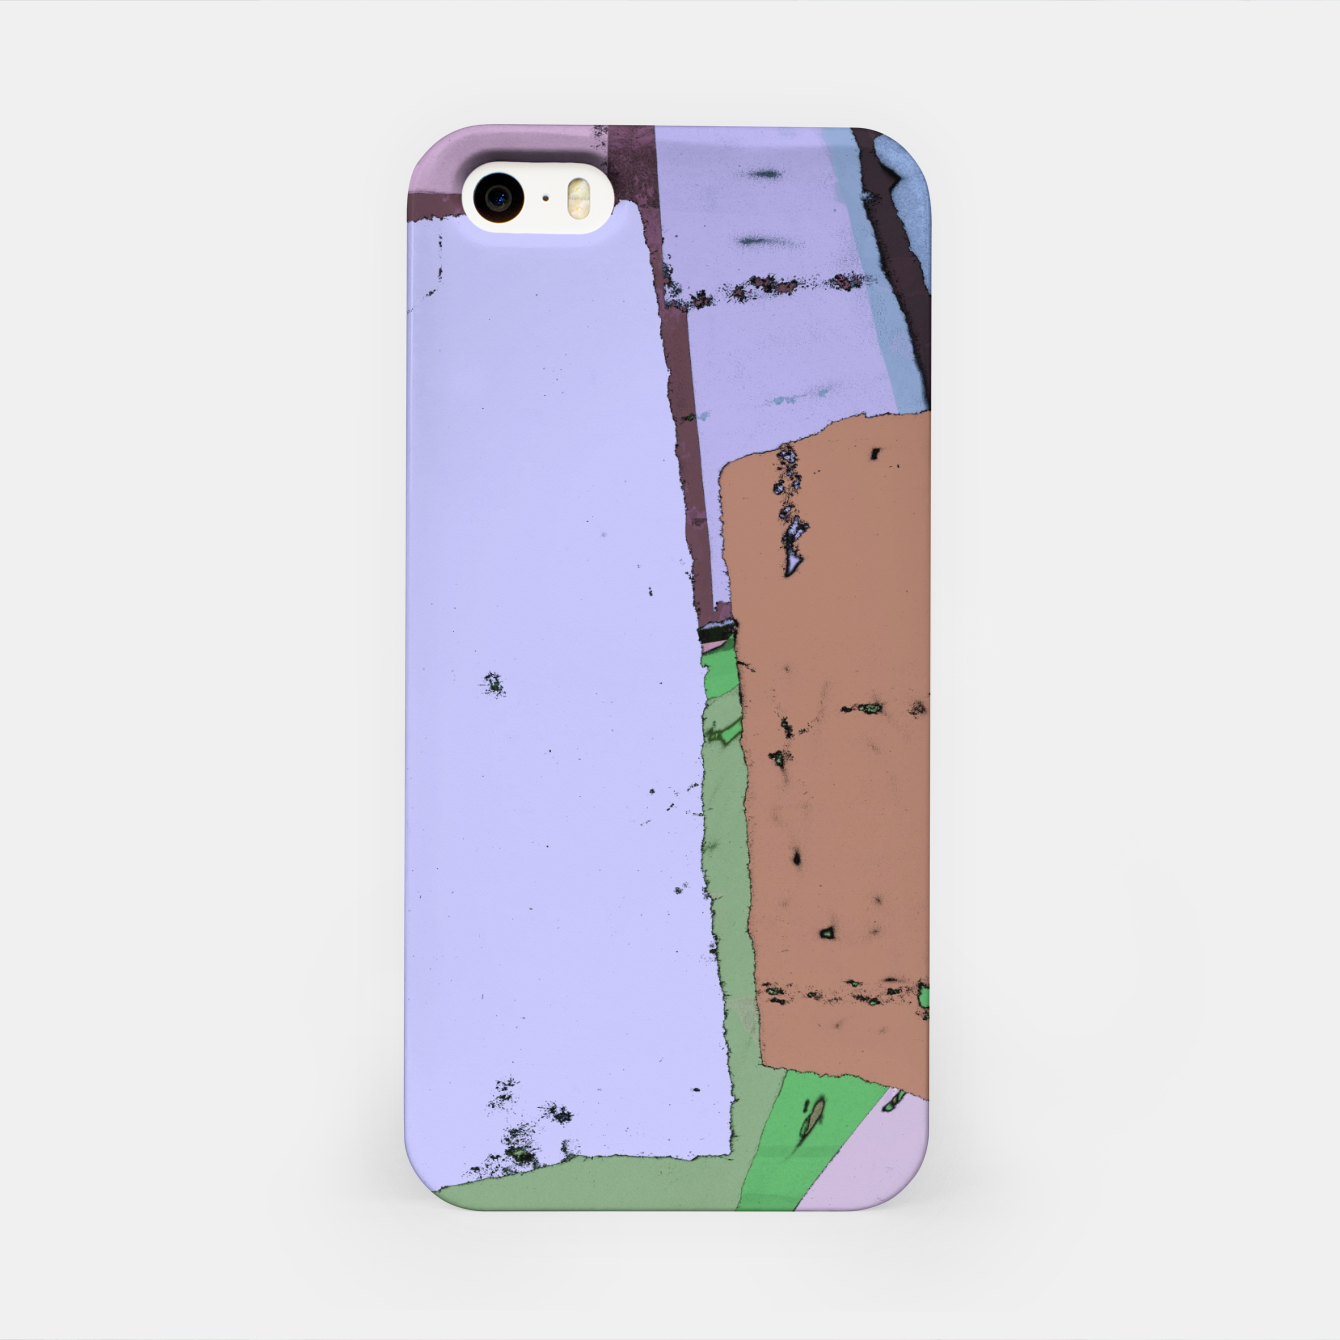 Image of Urban iPhone Case - Live Heroes